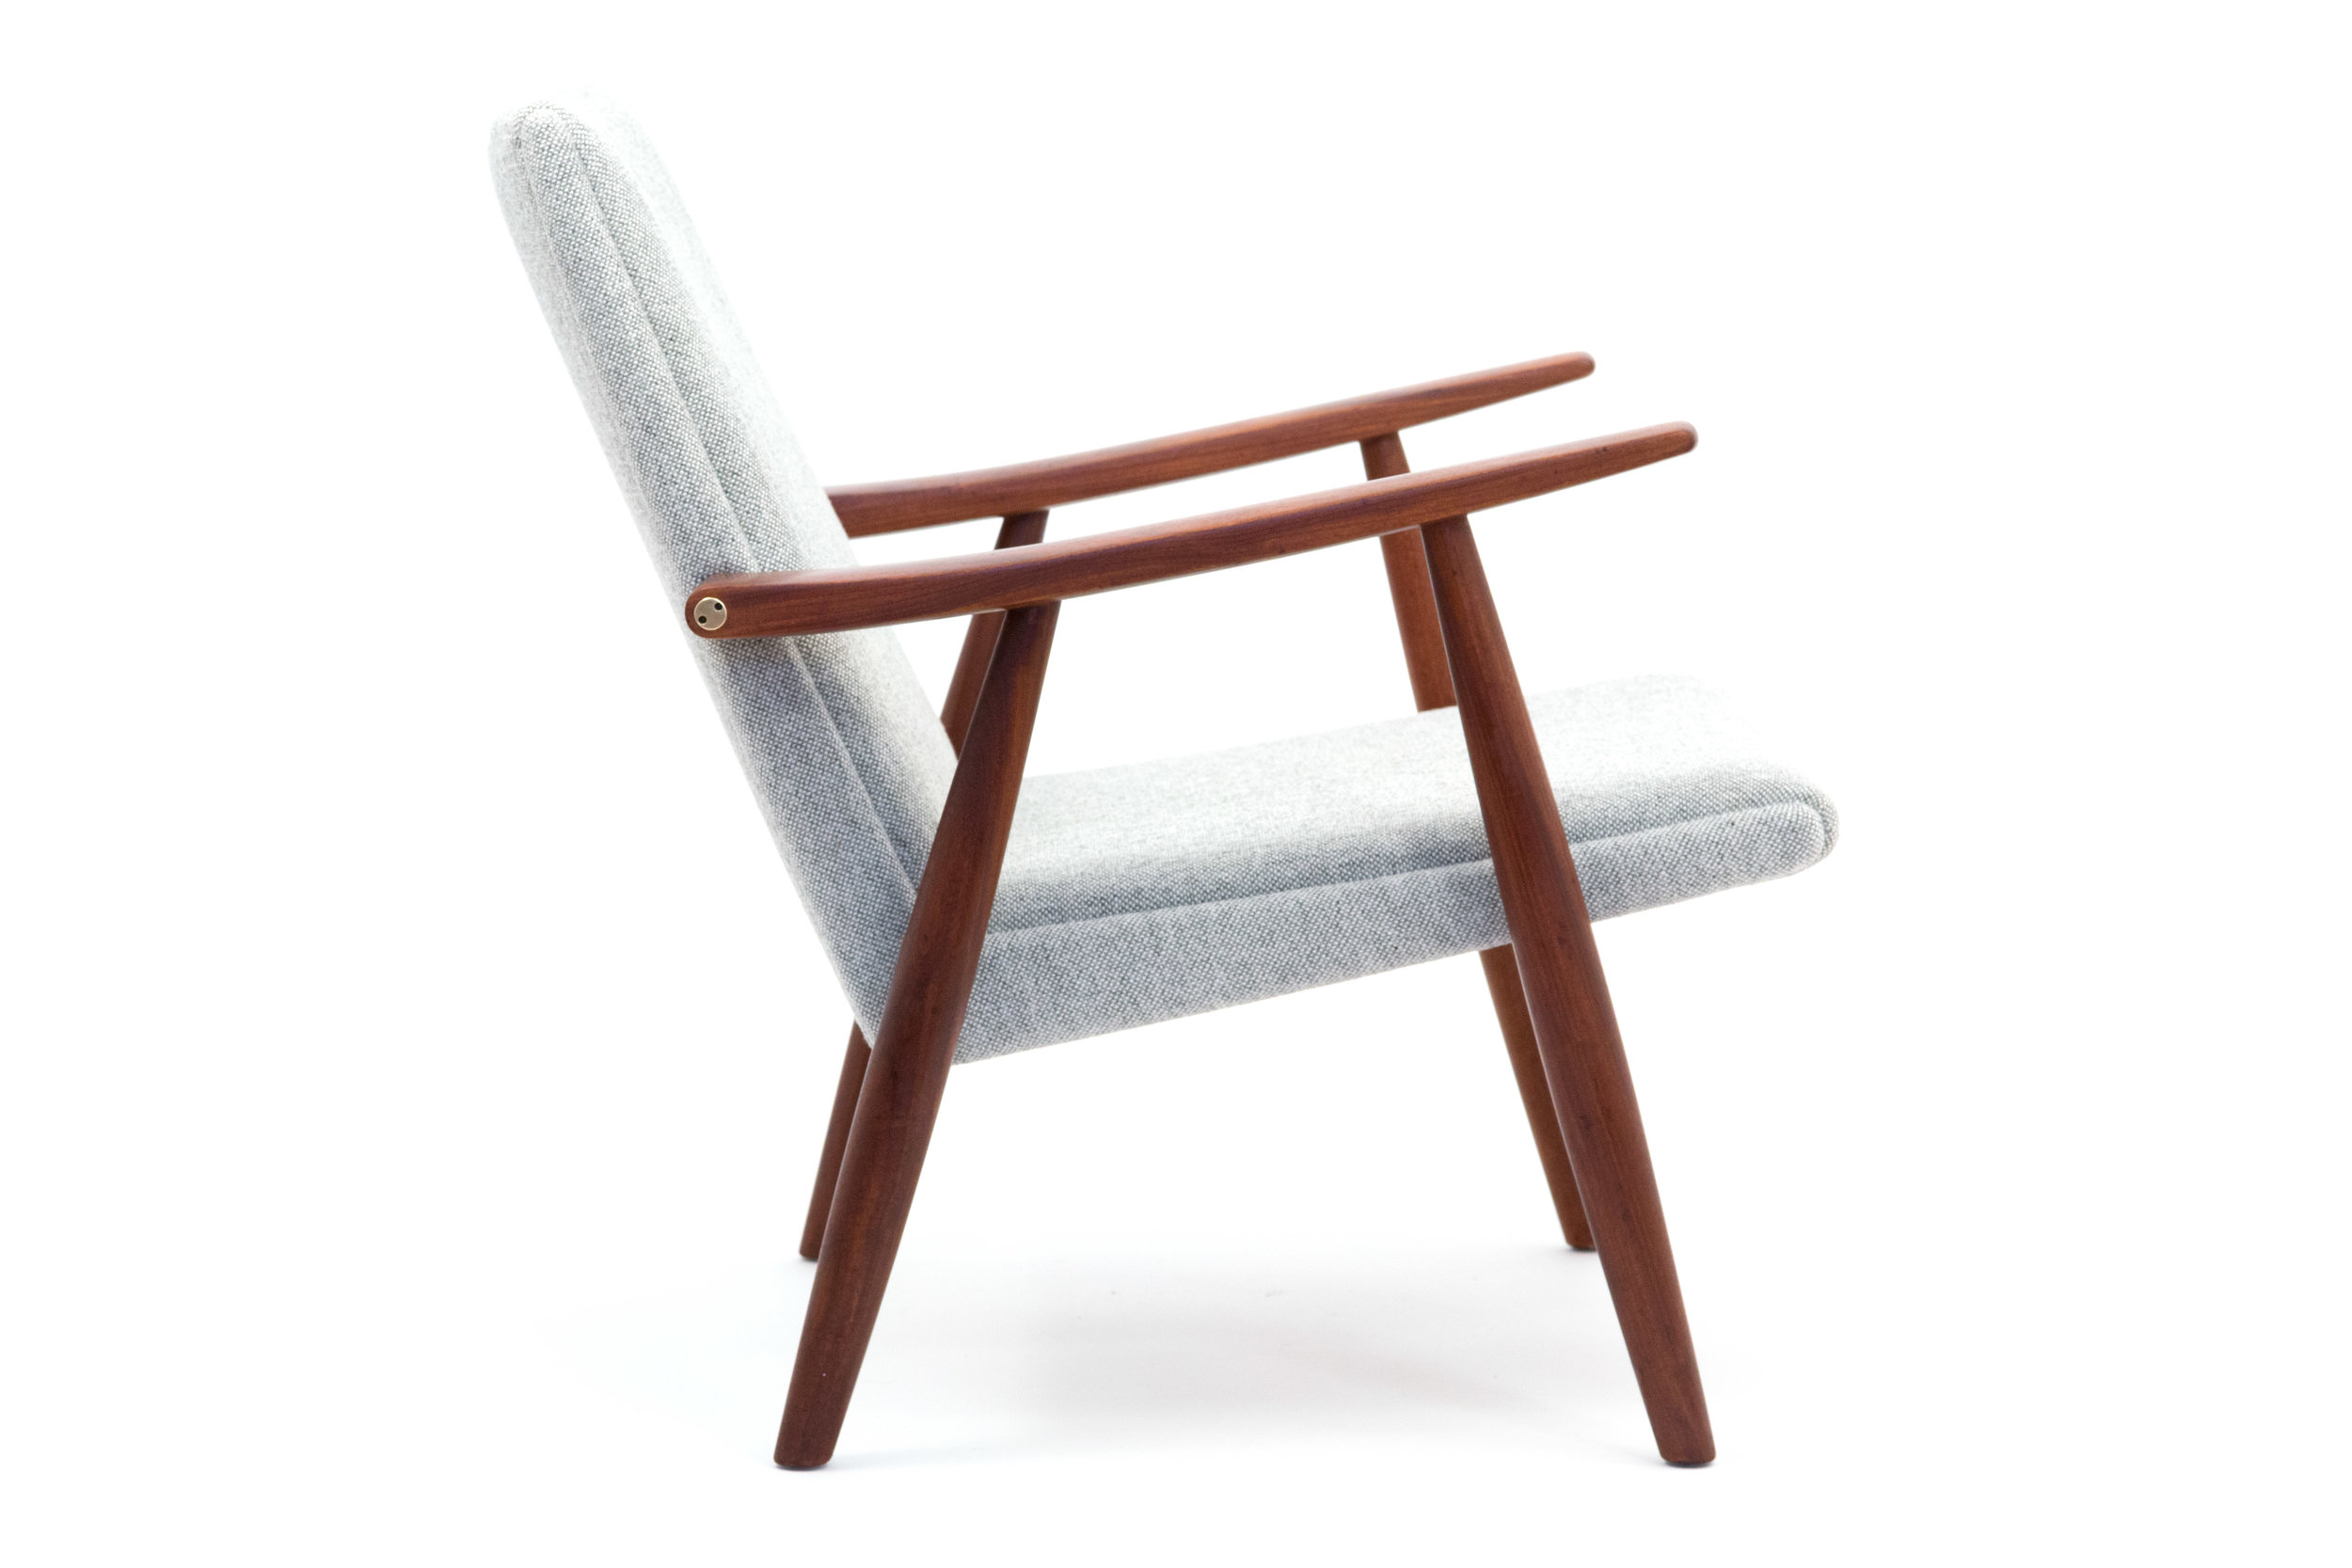 2nd Grey chair copy.jpg